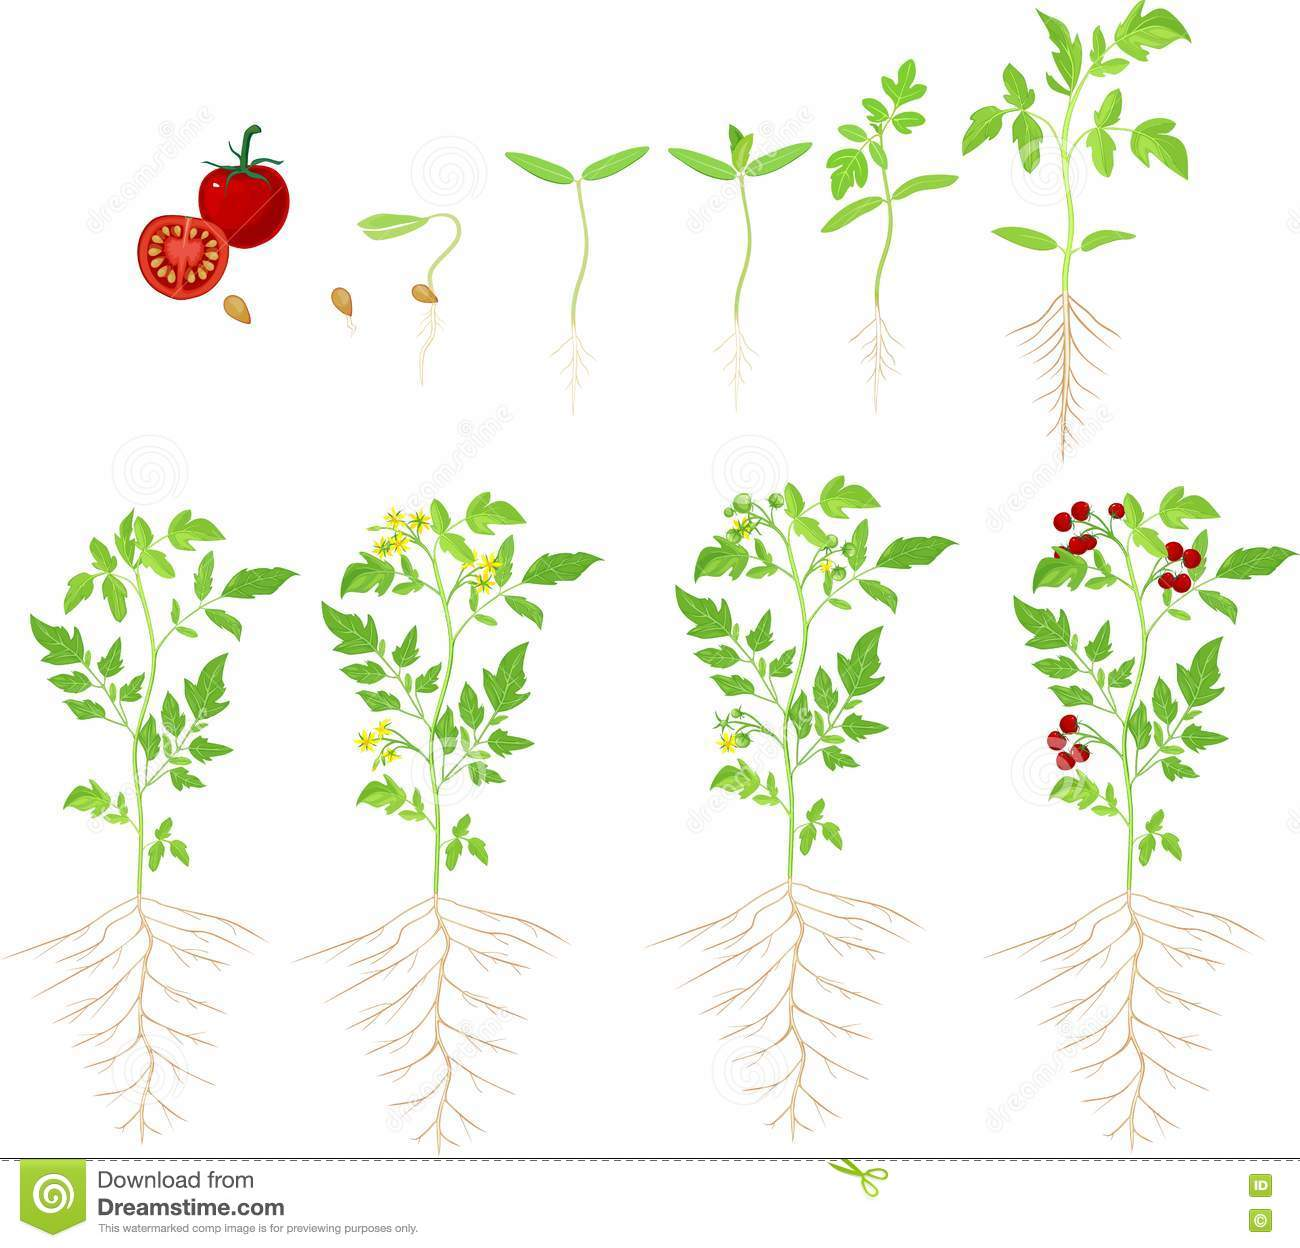 Cherry Tomato Growing Stage Stock Vector